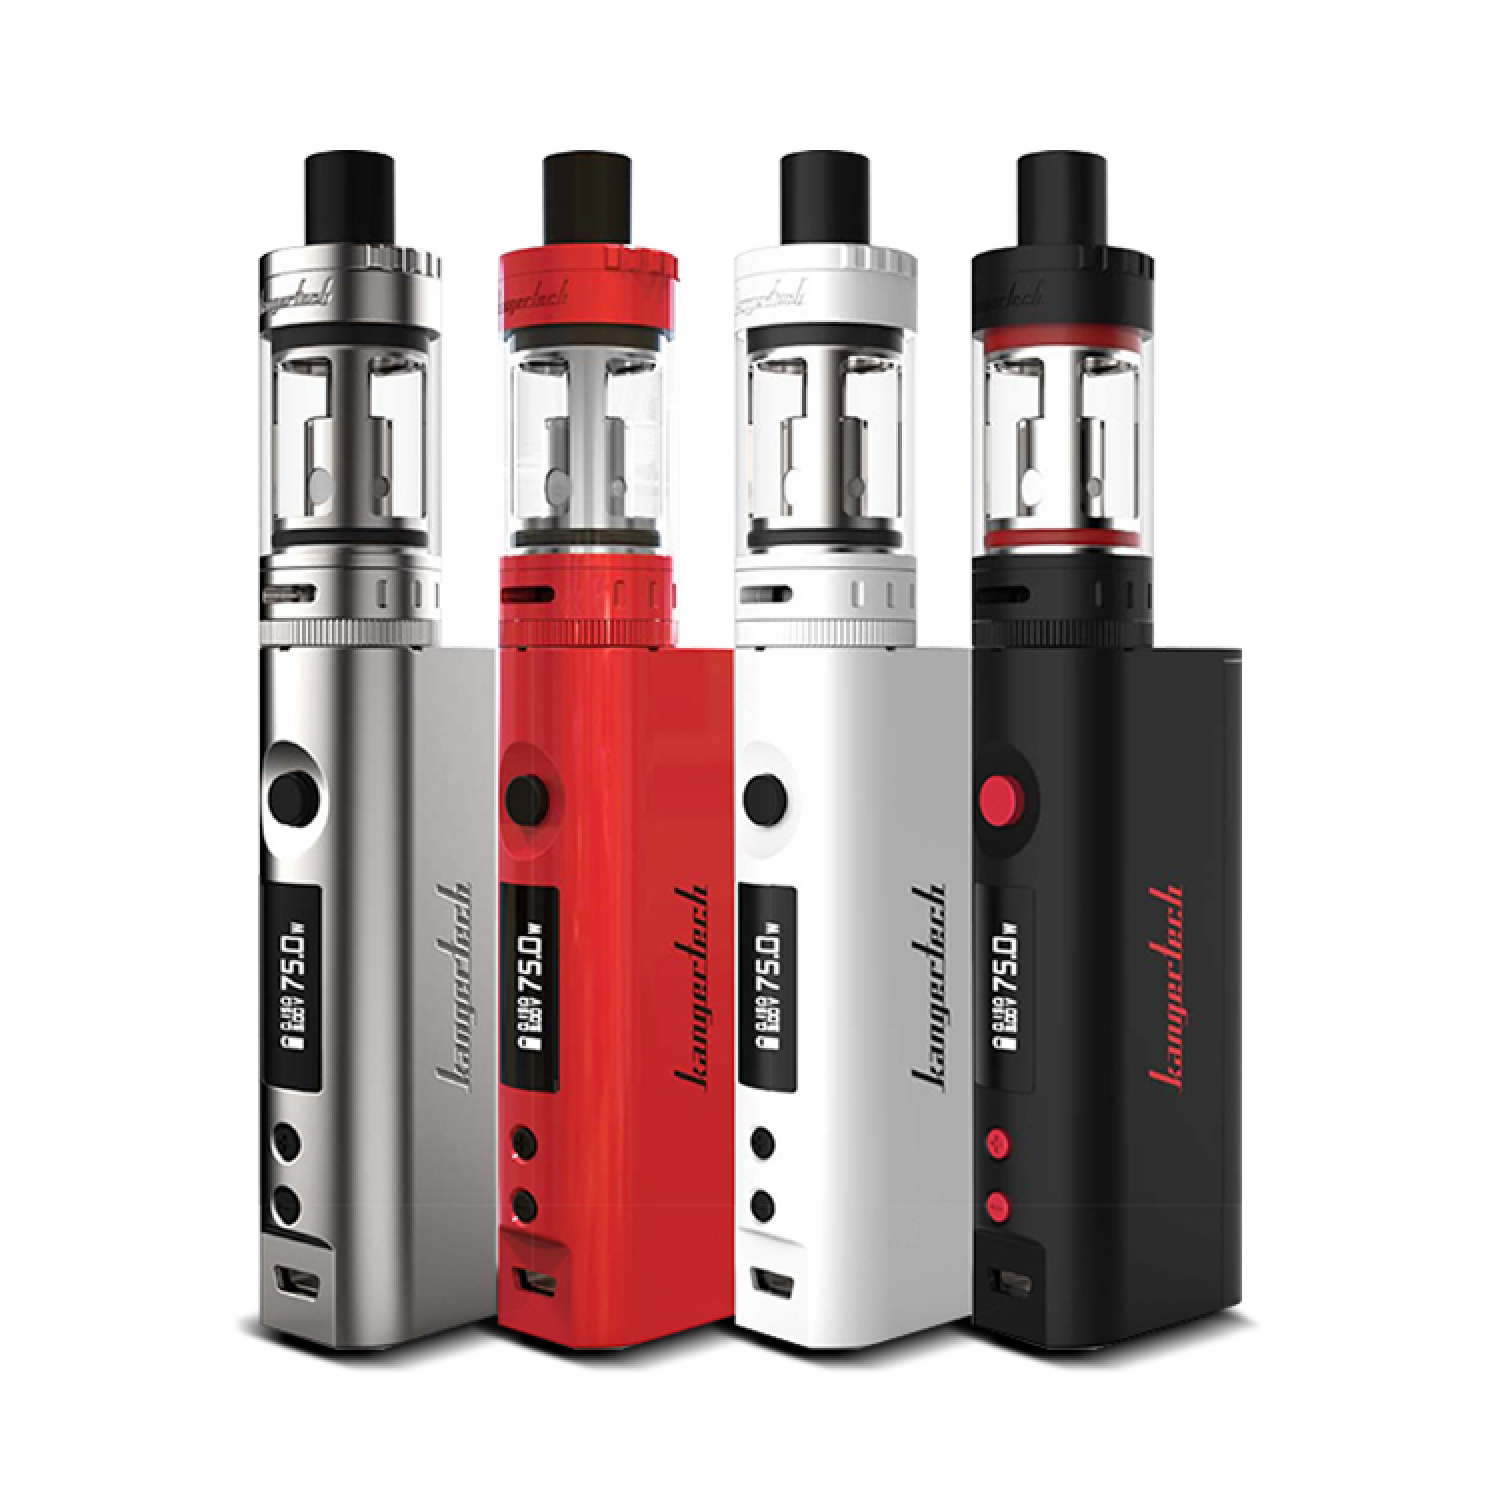 Kangertech Topbox Mini Satn Alnacak Eyler Pinterest Starter Vapor Kanger Aerotank Turbo Looking For An All In One Solution Introducing The Kbox Kit Everything You Need To Become Advance Vaper Just Add Your